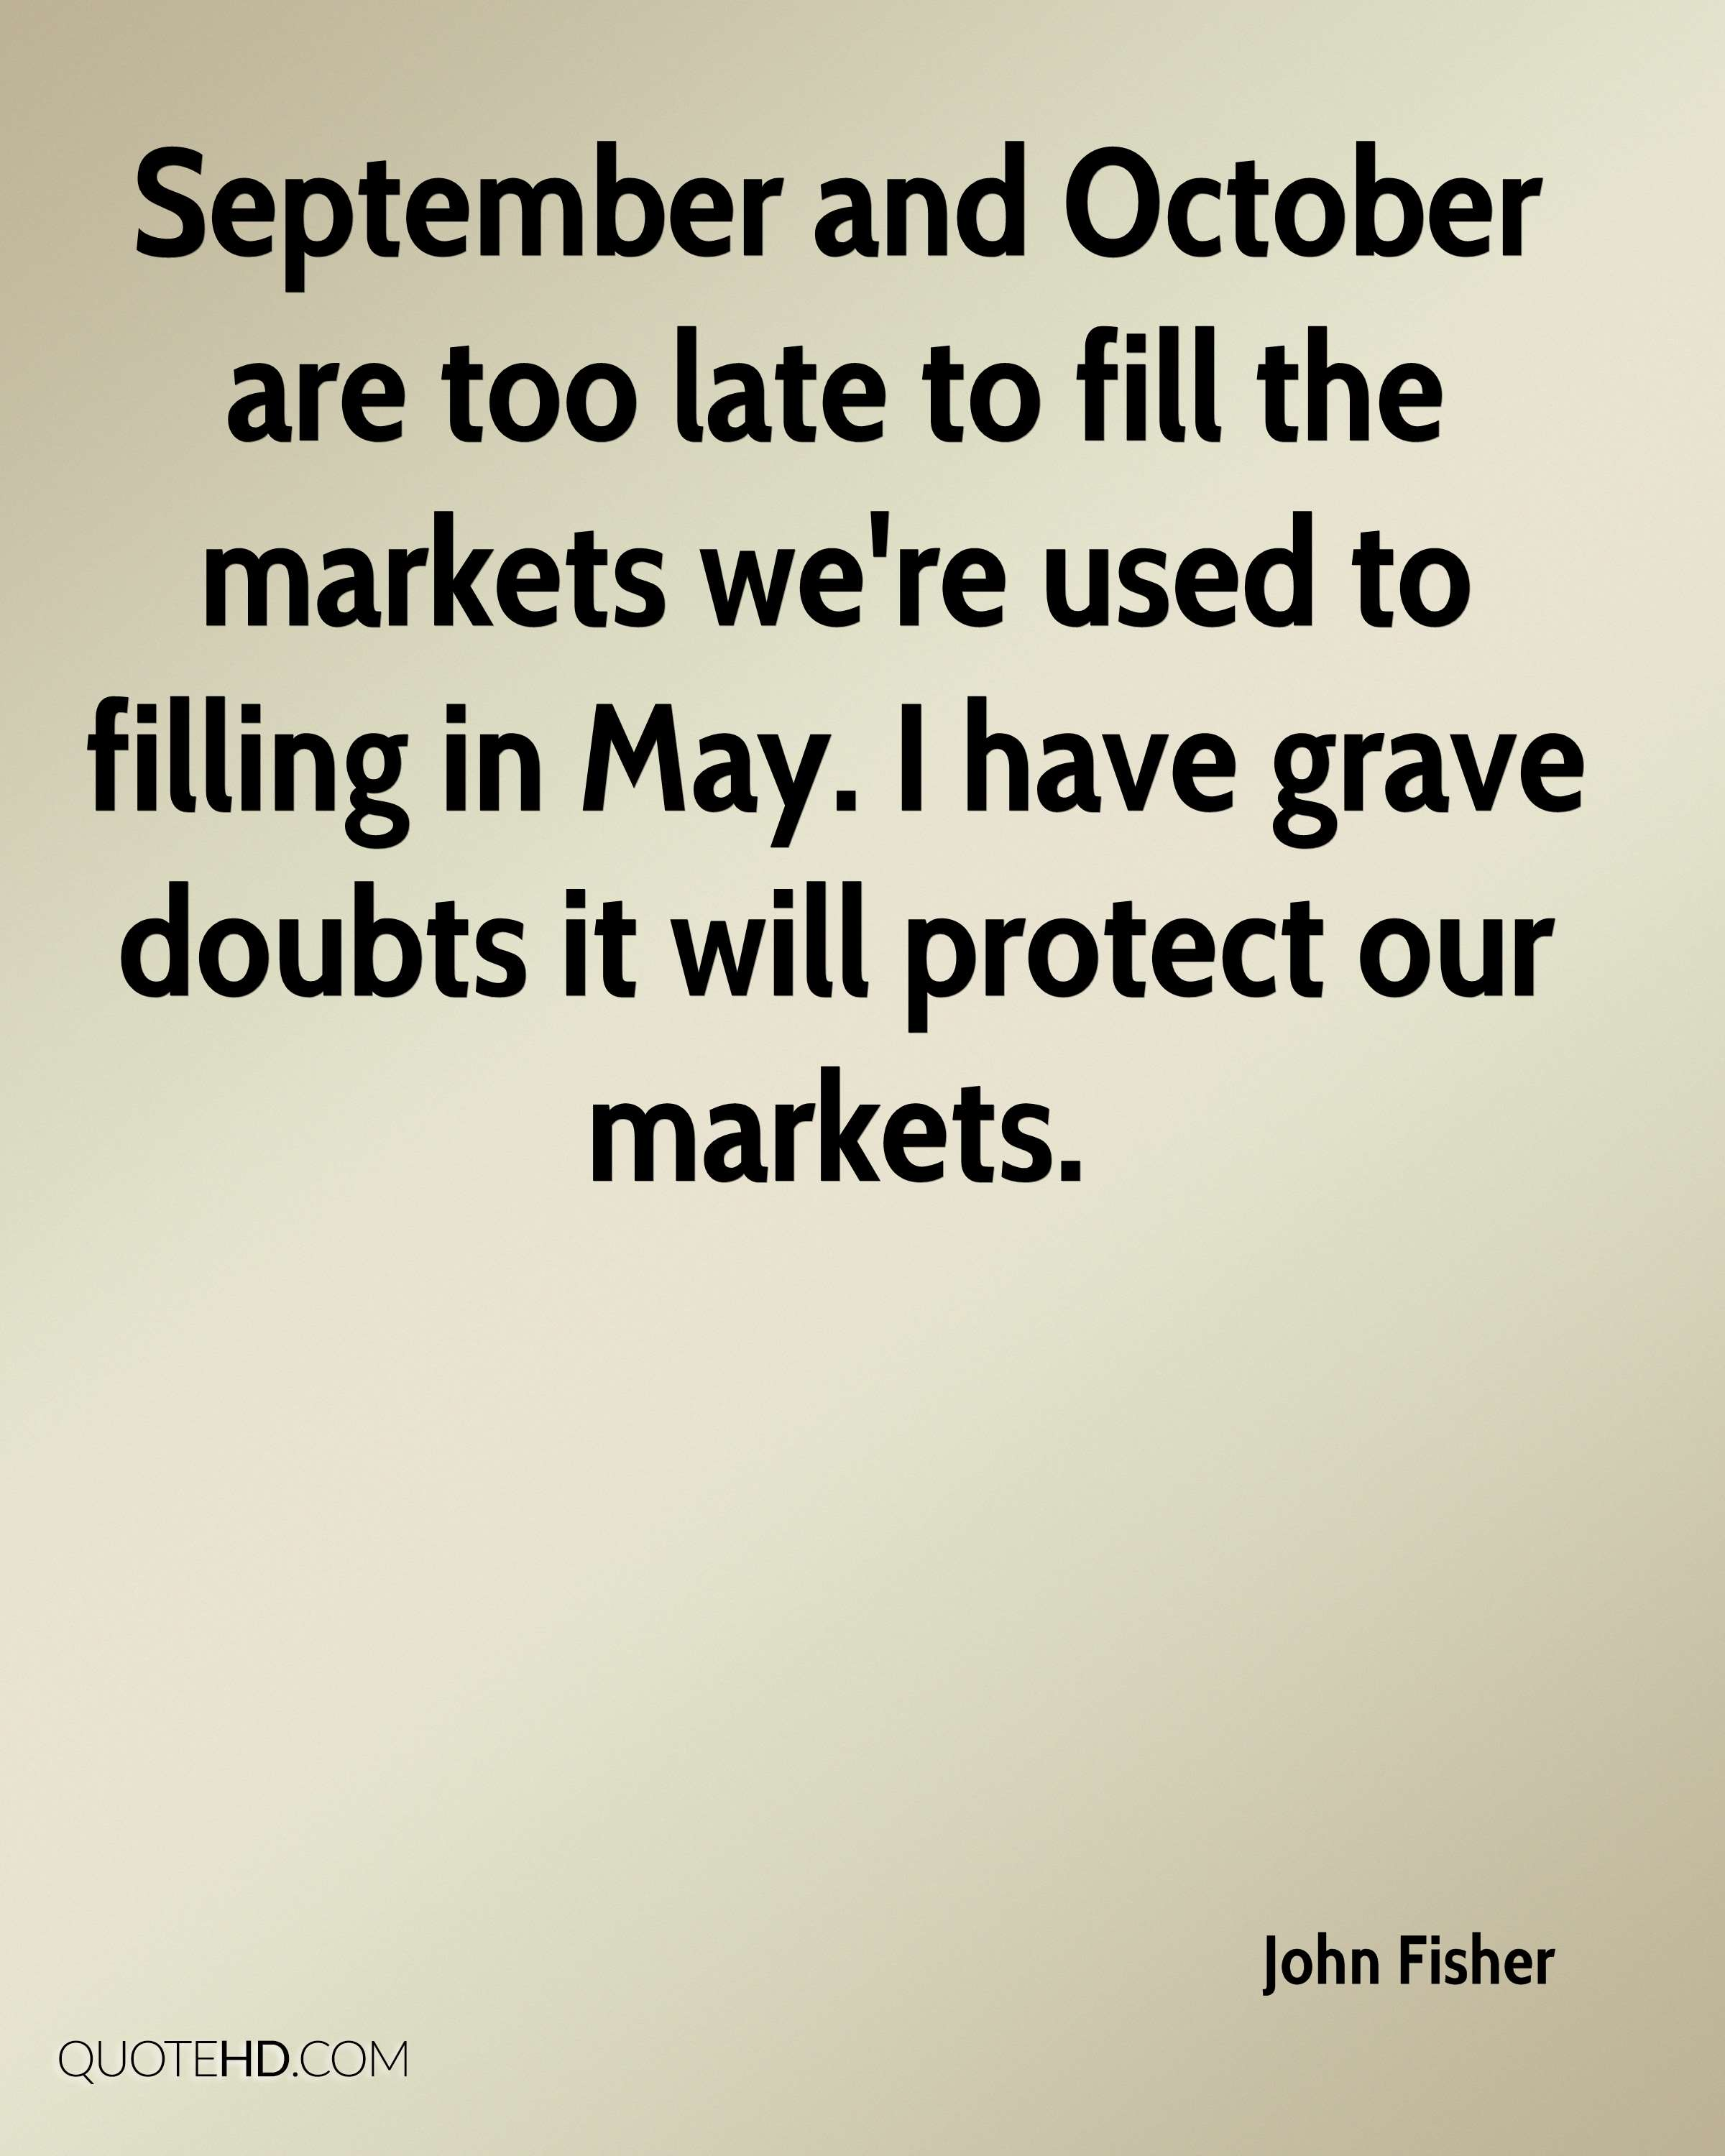 September and October are too late to fill the markets we're used to filling in May. I have grave doubts it will protect our markets.